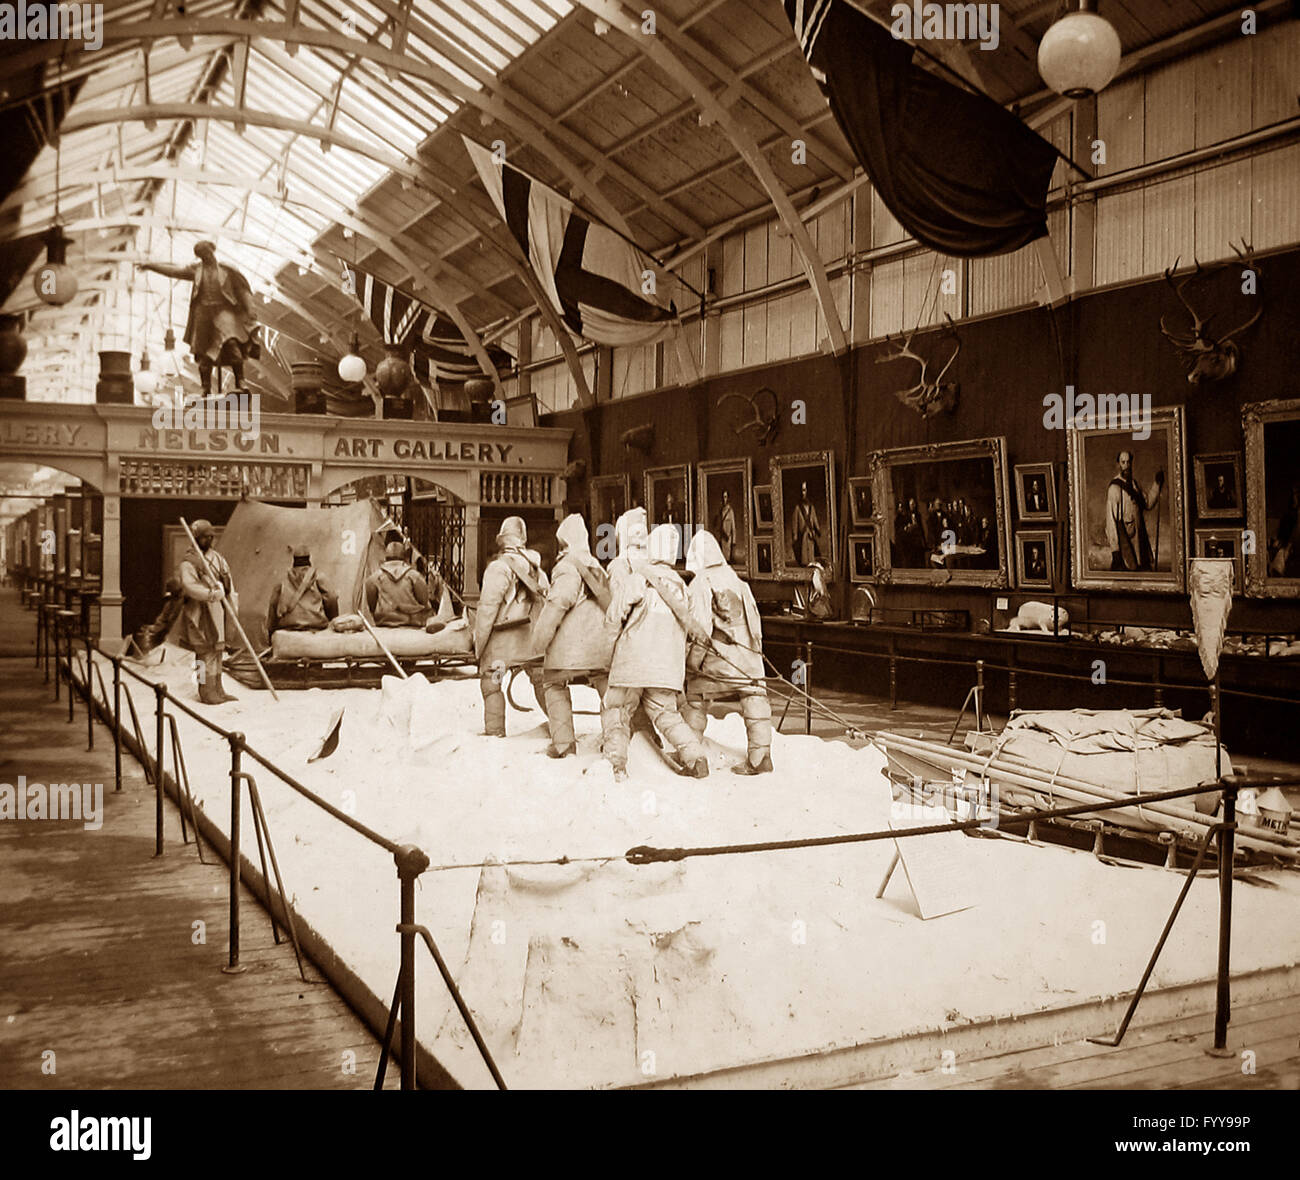 Royal Naval Exhibition 1891 - Arctic tableau Stock Photo